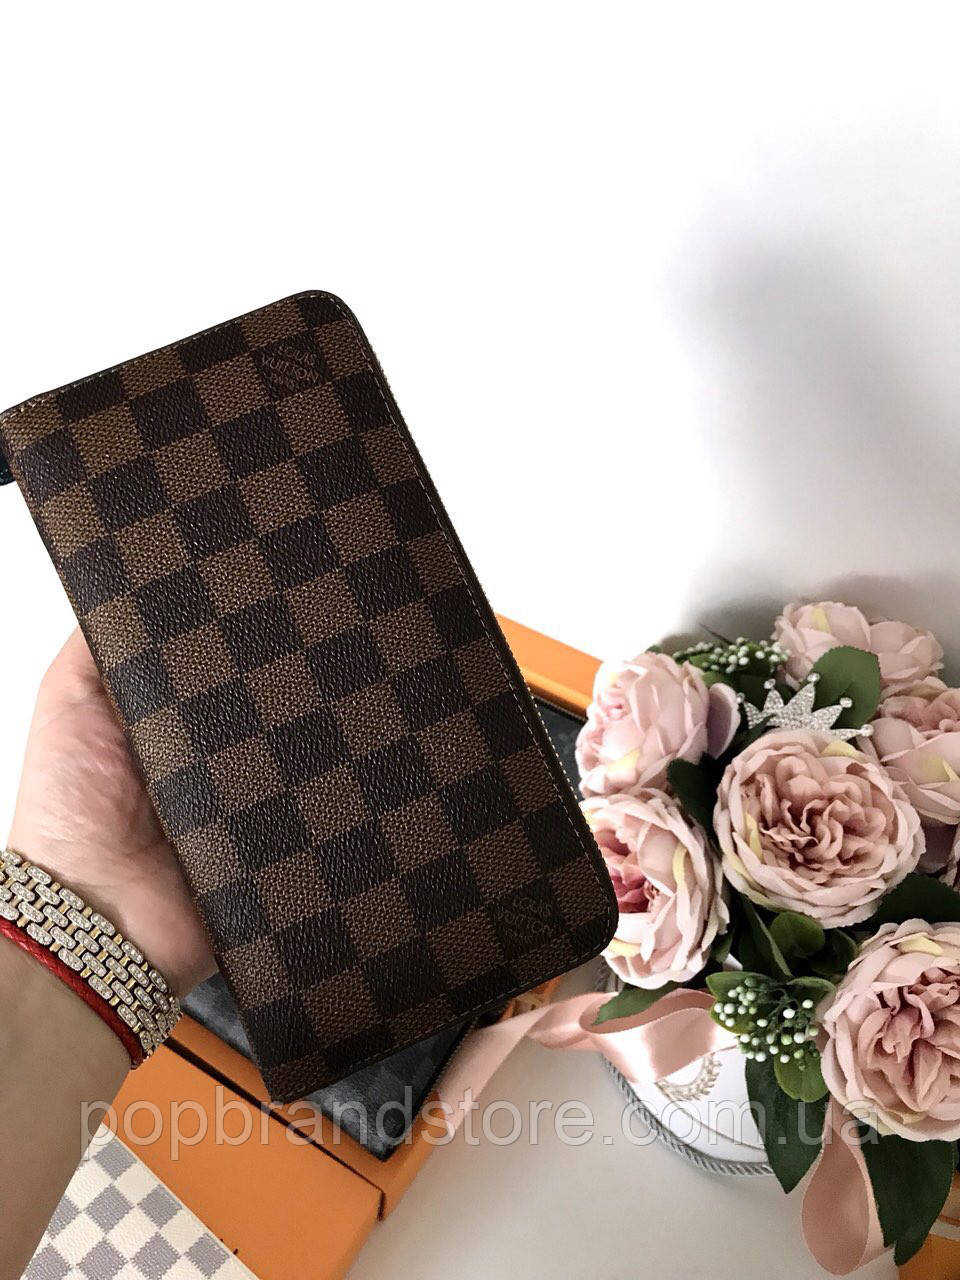 0d1ab45122307 Портмоне LOUIS VUITTON DAMIER CANVAS (реплика)  продажа